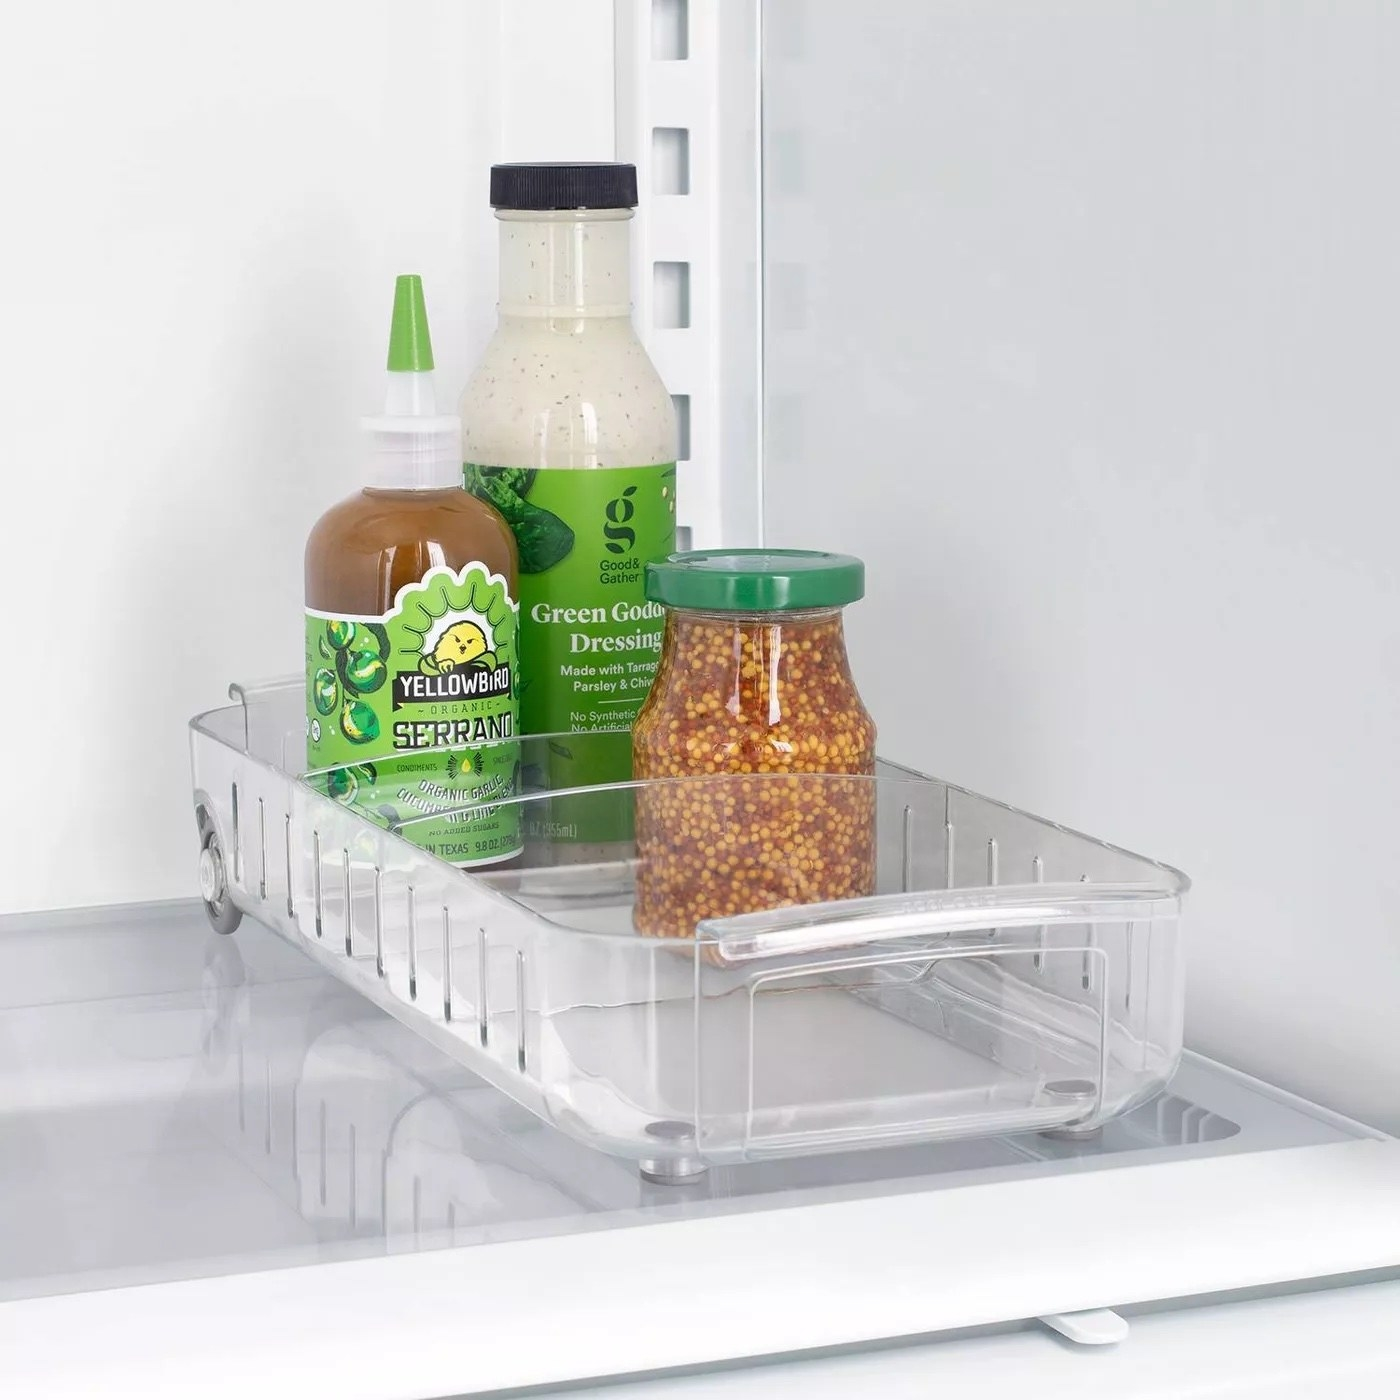 The fridge caddy with a few items inside of it